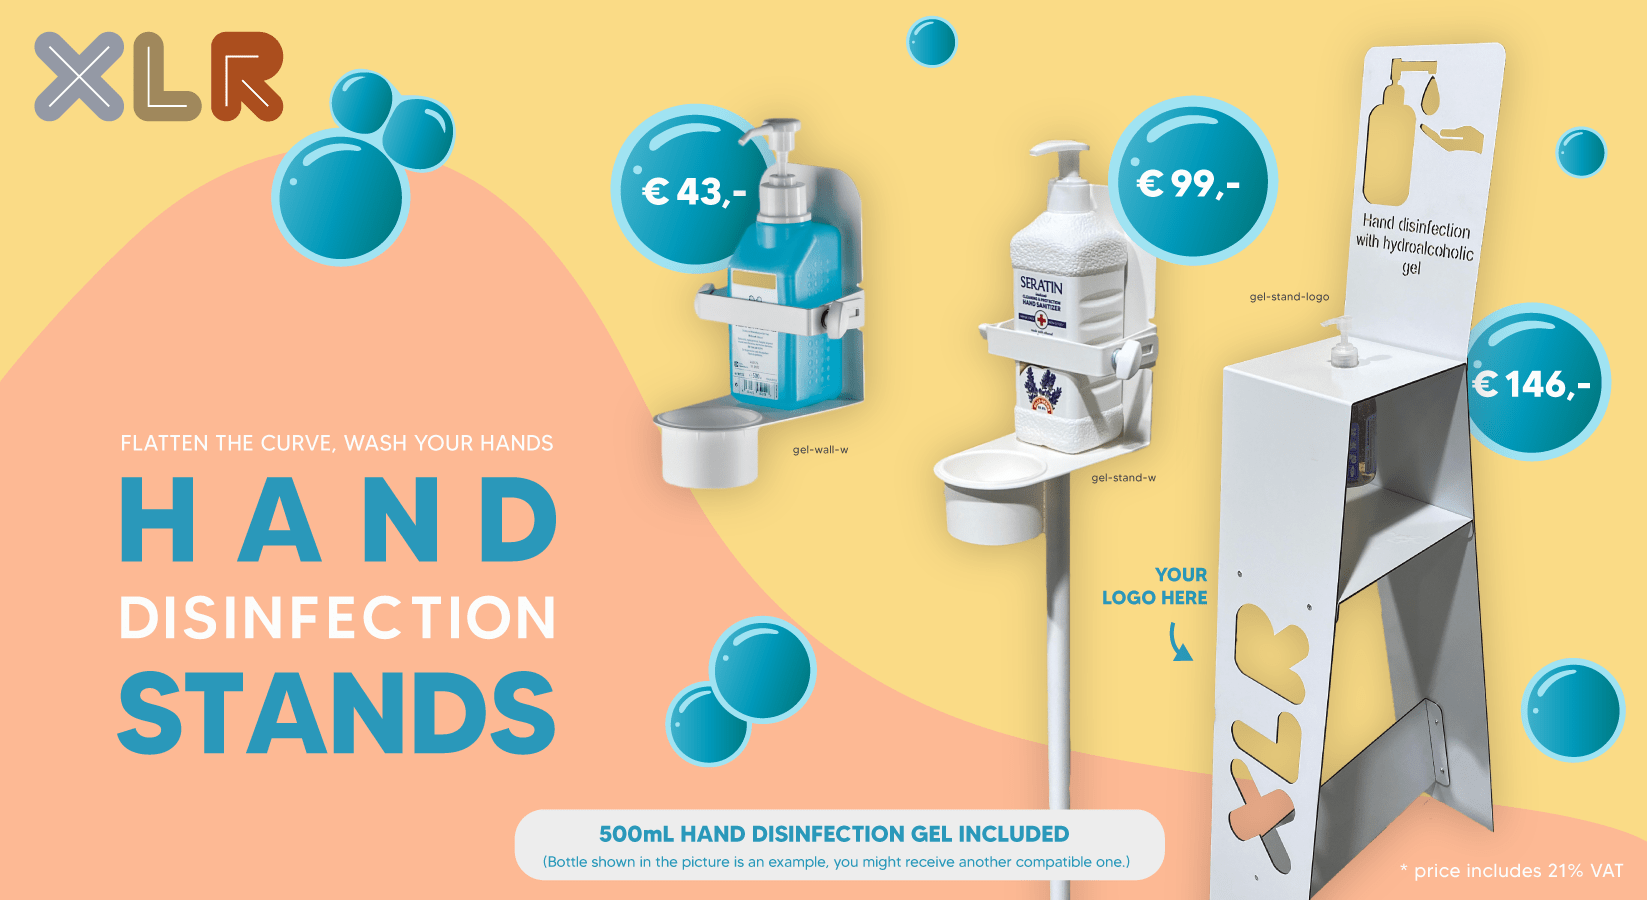 Mobile disinfection stands